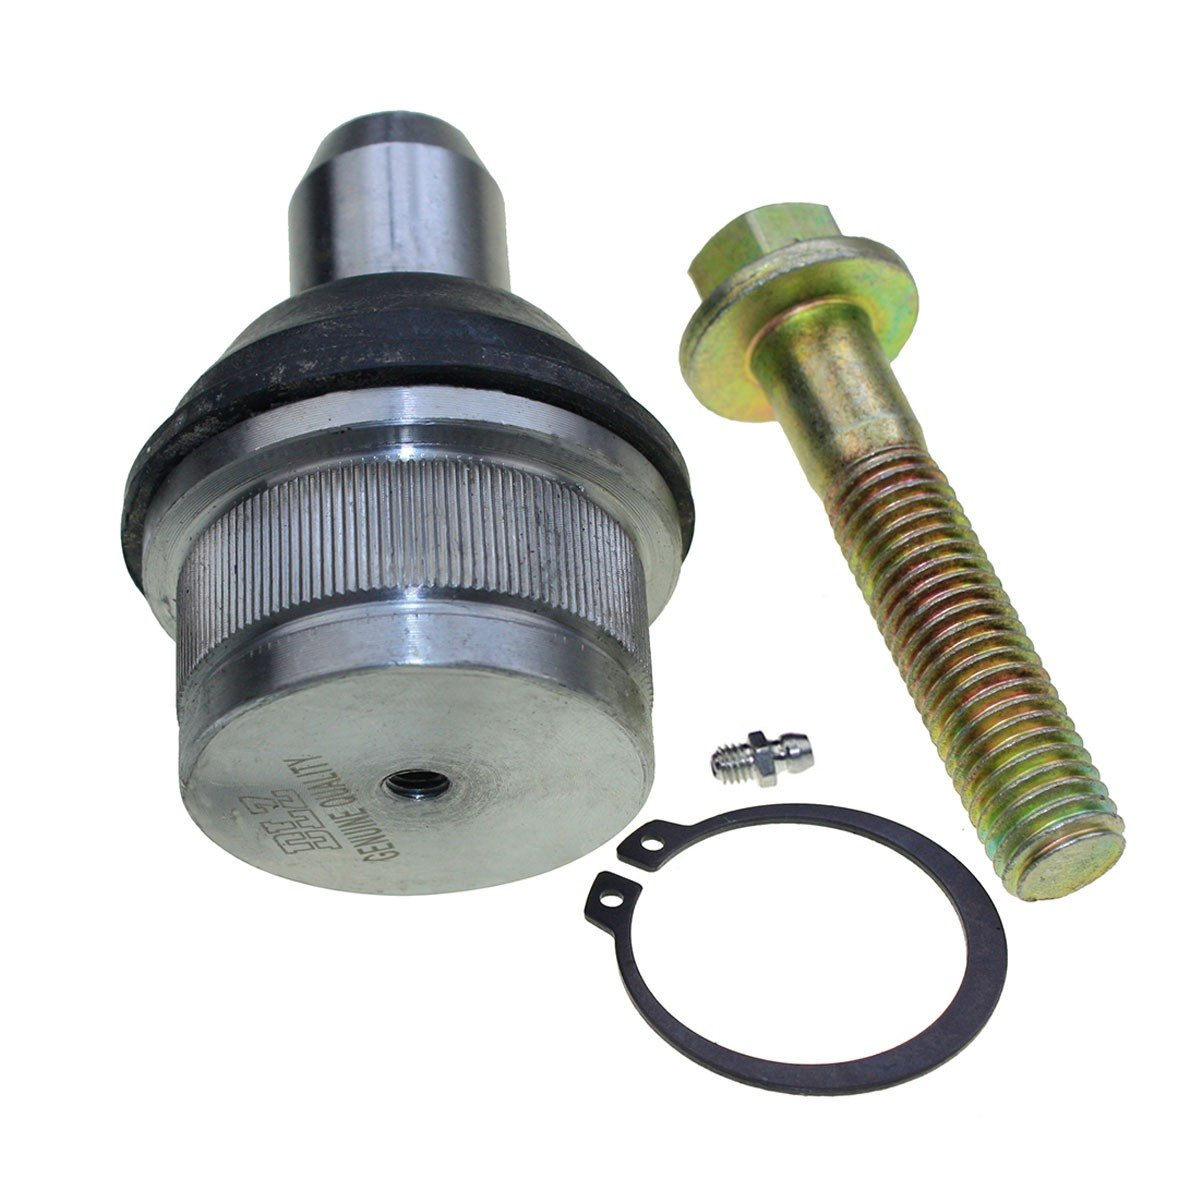 DLZ 2 Pcs Front Upper Ball Joint Compatible with Ford E-150 2003-2014 Compatible with Ford E-250 2003-2014